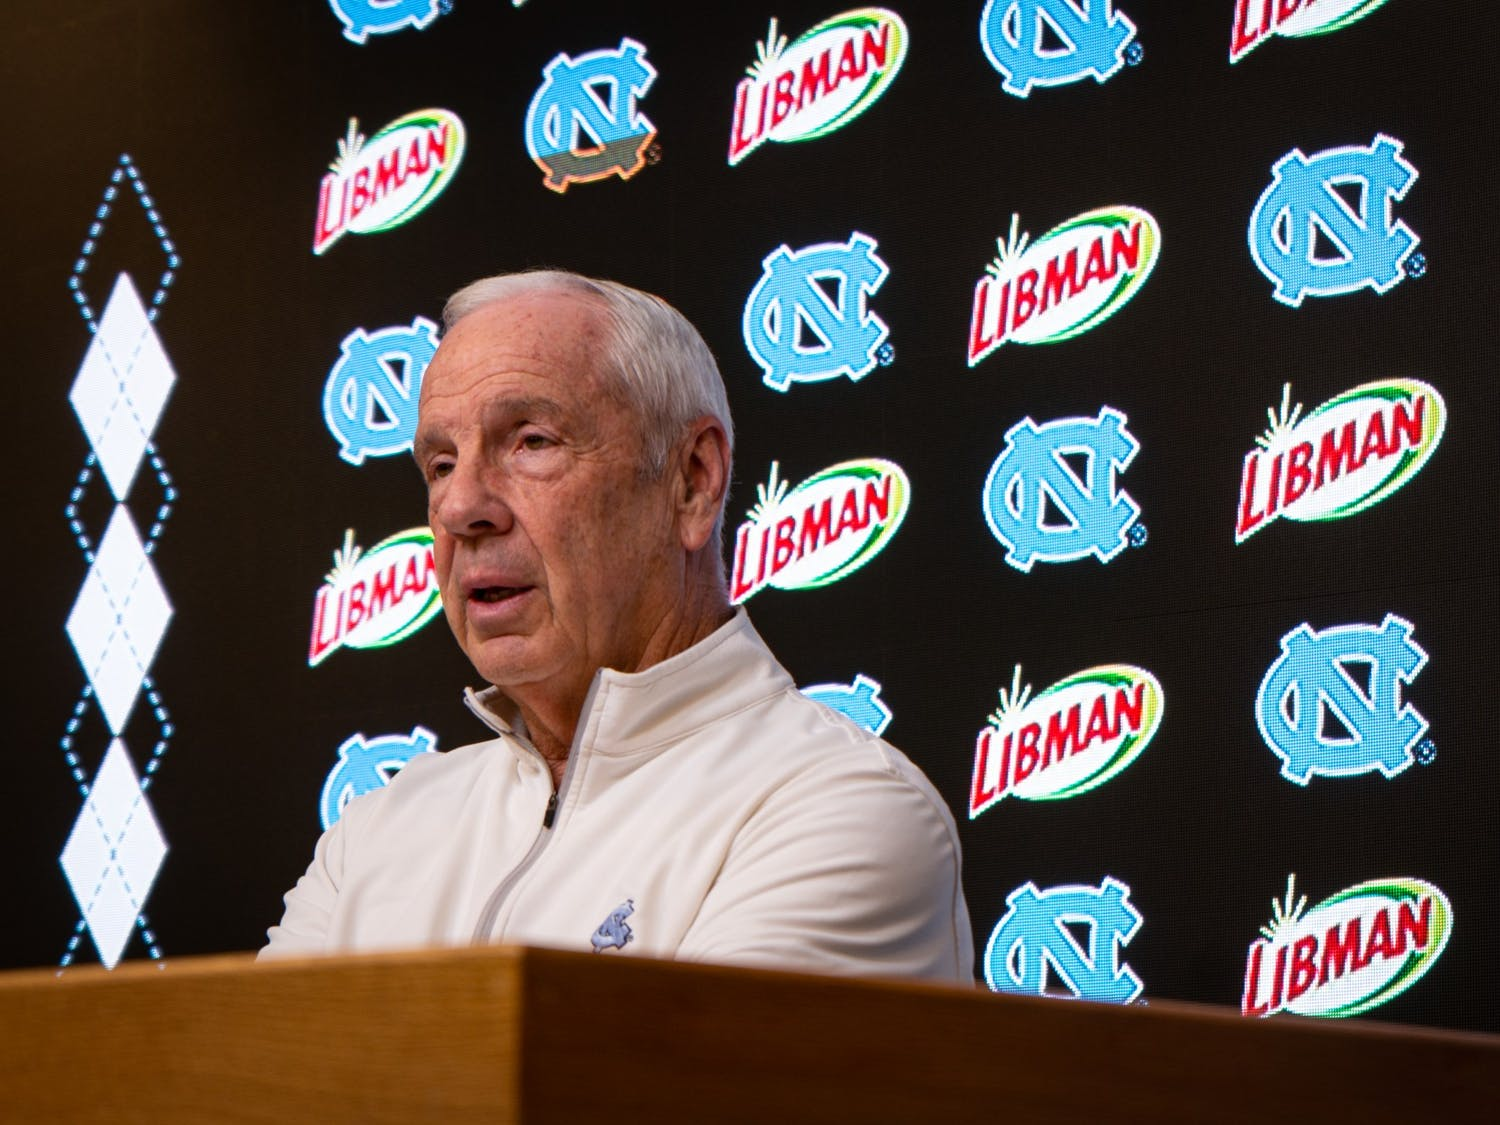 Head Basketball Coach Roy Williams speaks at a press conference in the Dean E. Smith Center on Friday, Feb. 14, 2020. In the middle of a rough season for UNC Men's Basketball, they are hoping to bounce back on Saturday's game against Virginia Tech.